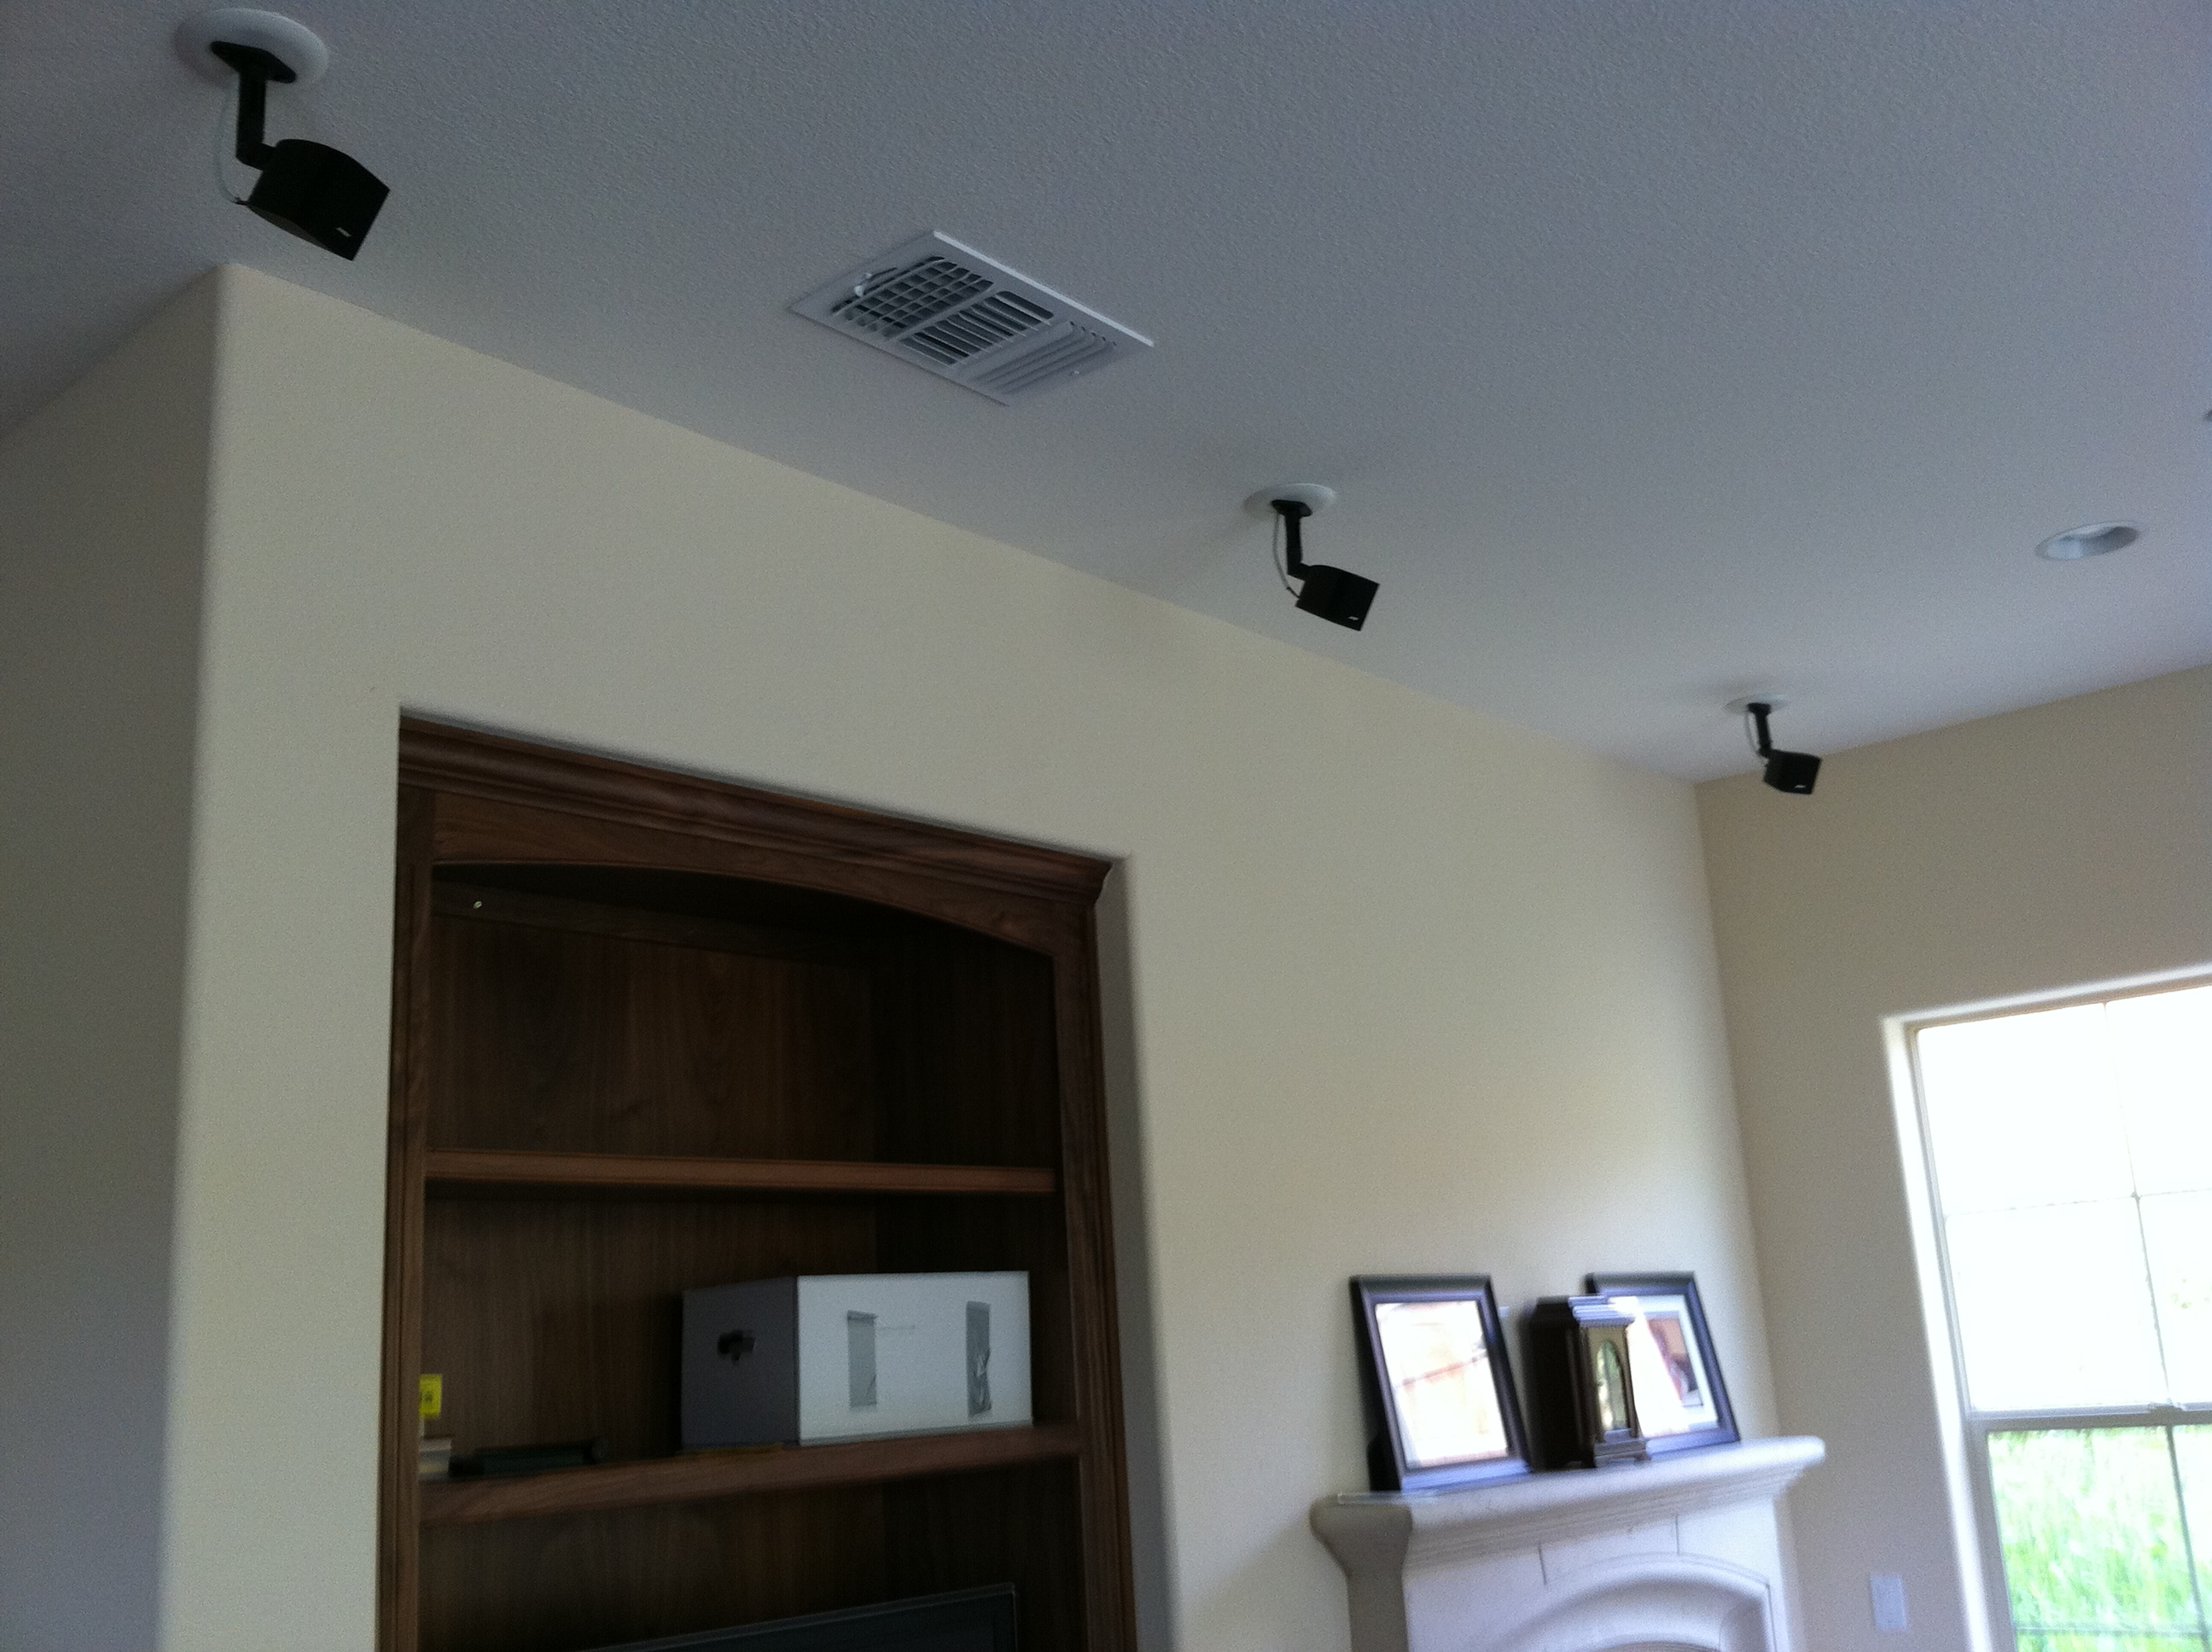 Bose Satellite Lifestyle Speakers Installed In Ceiling